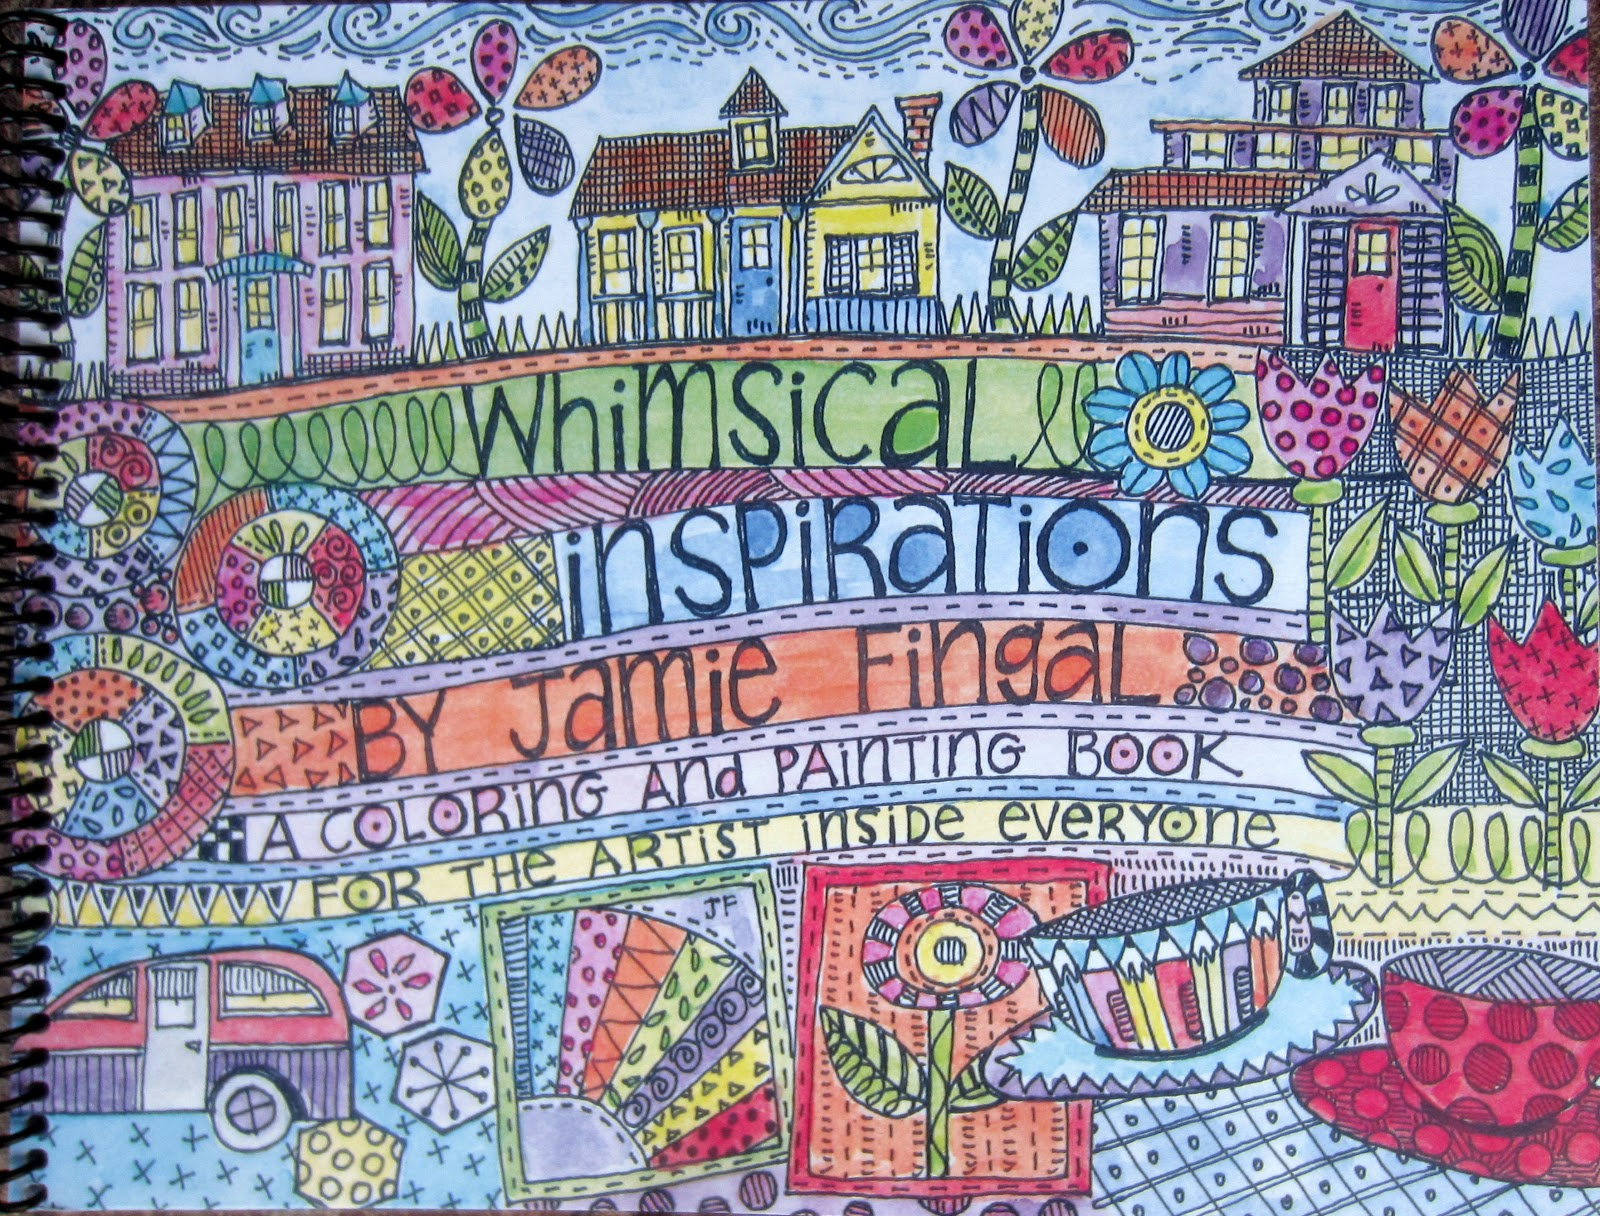 I Am So Excited To Share My New Book Whimsical Inspirations Coloring And Painting For The Artist Inside Everyone Target Audience